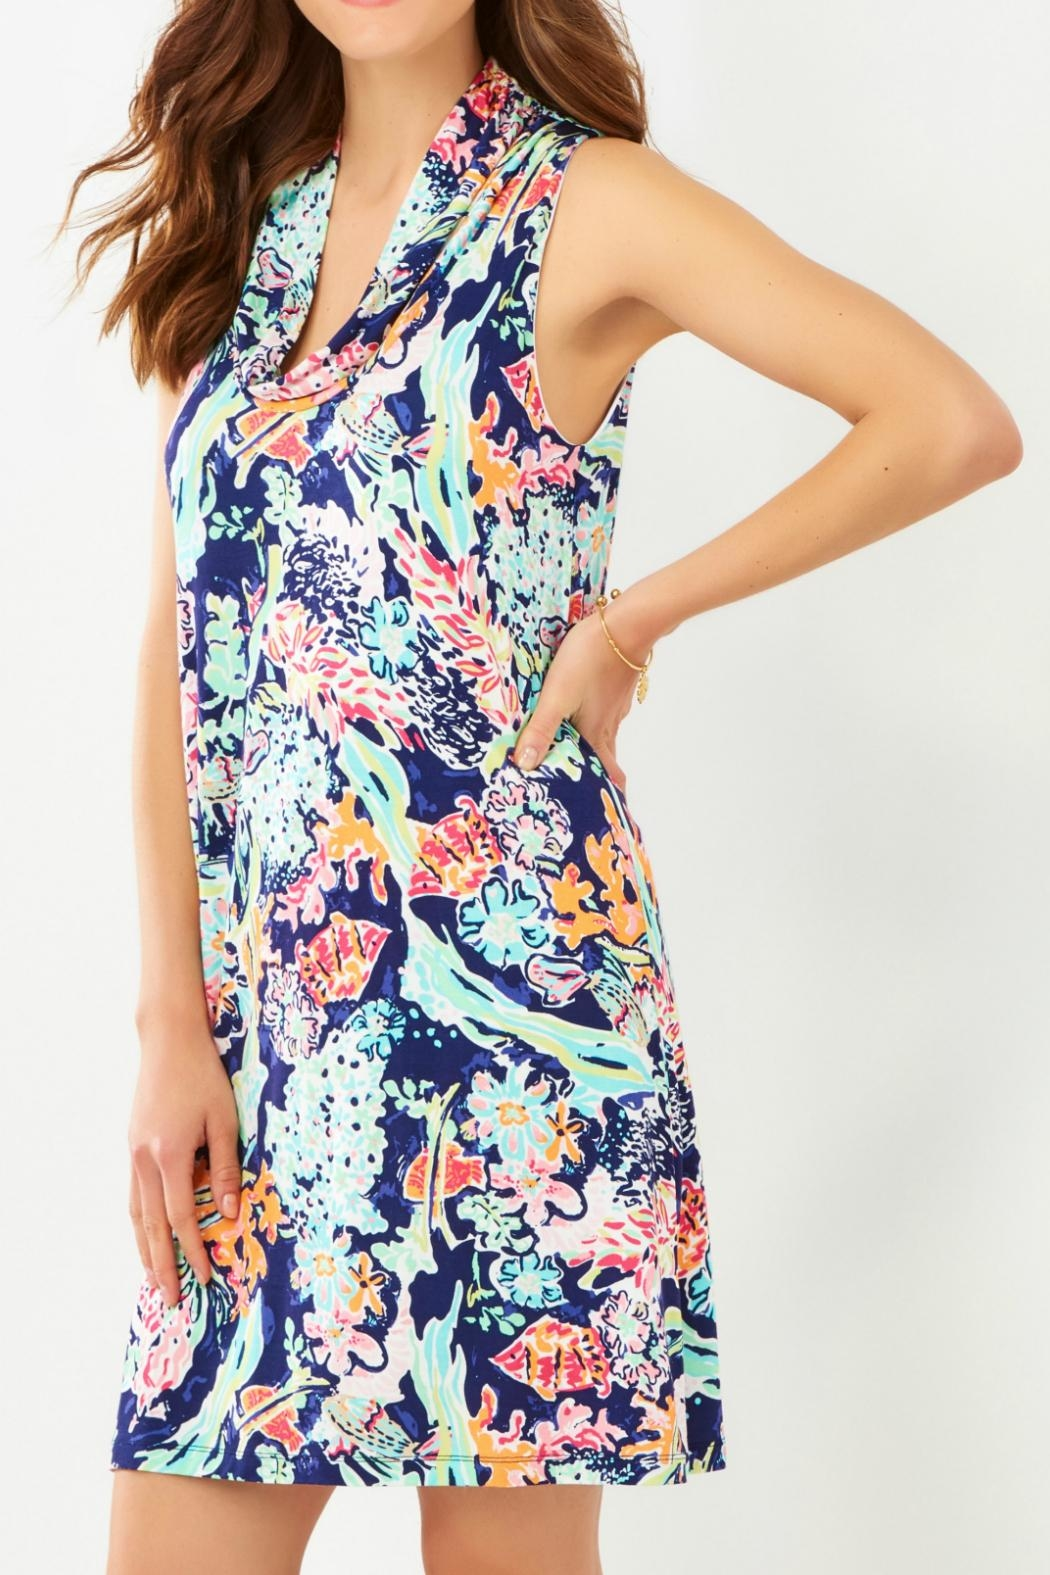 Charlie Paige Tropical Cowl-Neck Dress - Front Full Image